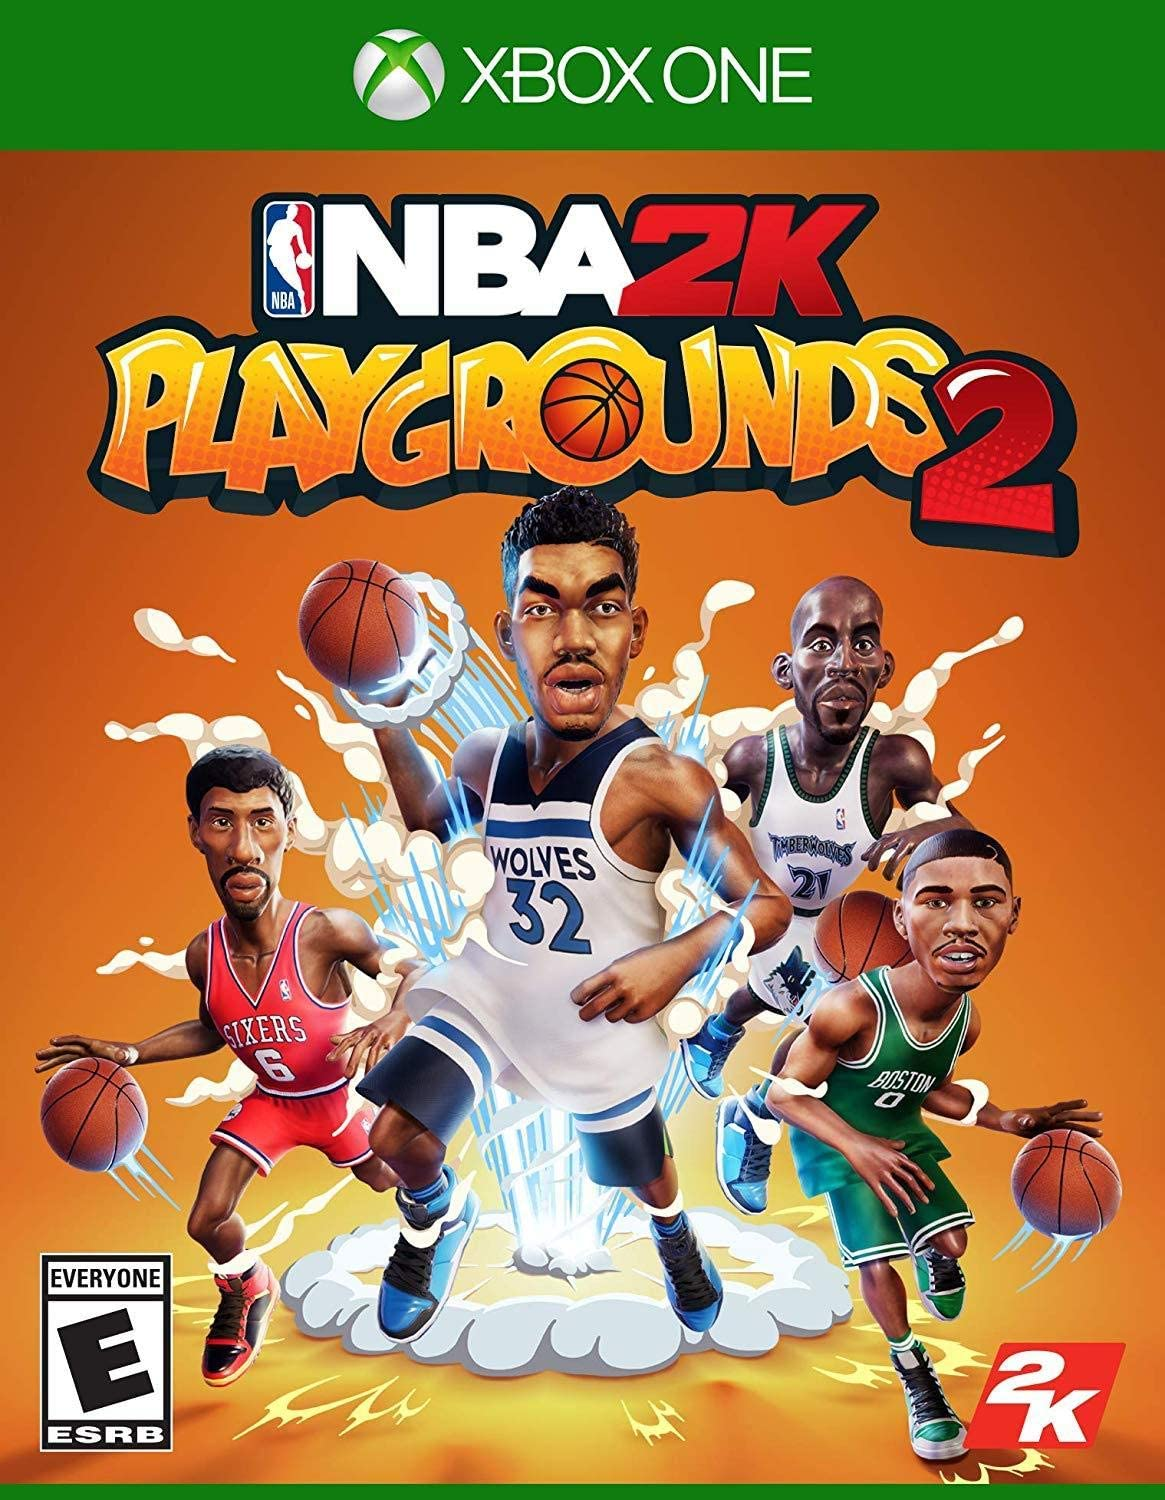 Amazon com: NBA 2K Playgrounds 2 - Xbox One: Take 2